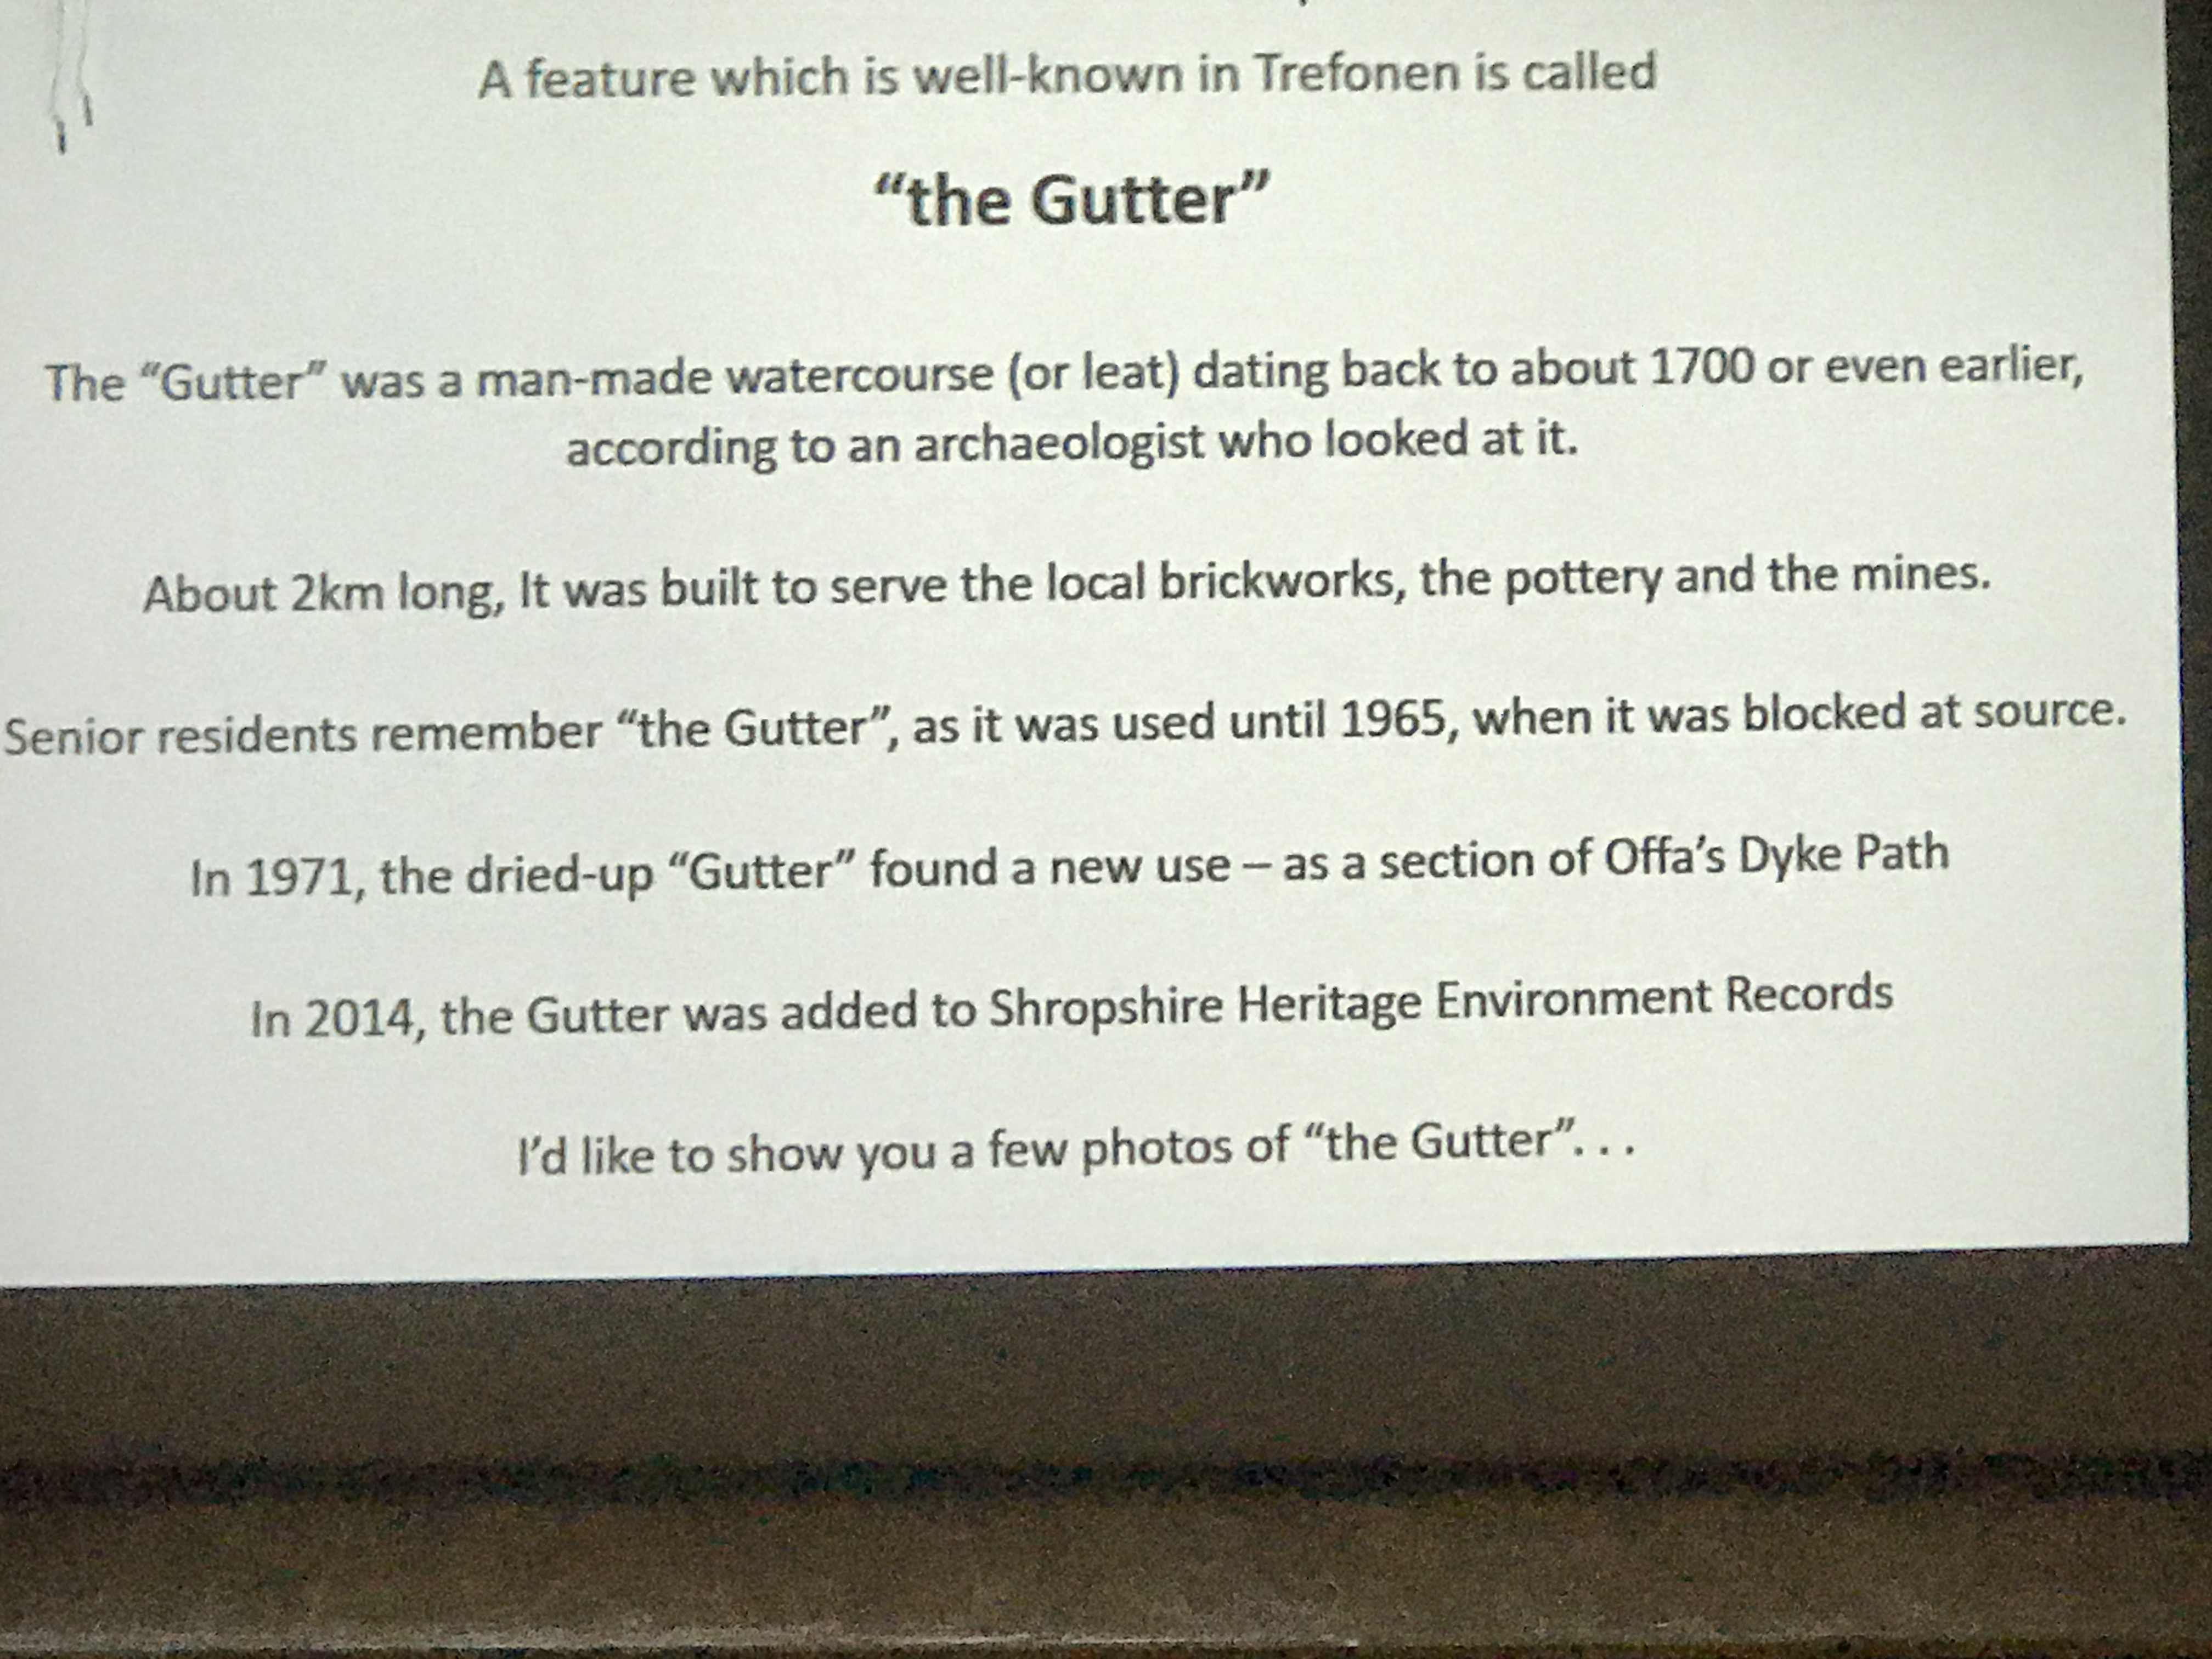 Niall Heaton - guest speaker at the Oswestry Offa's Dyke Collaboratory 2018